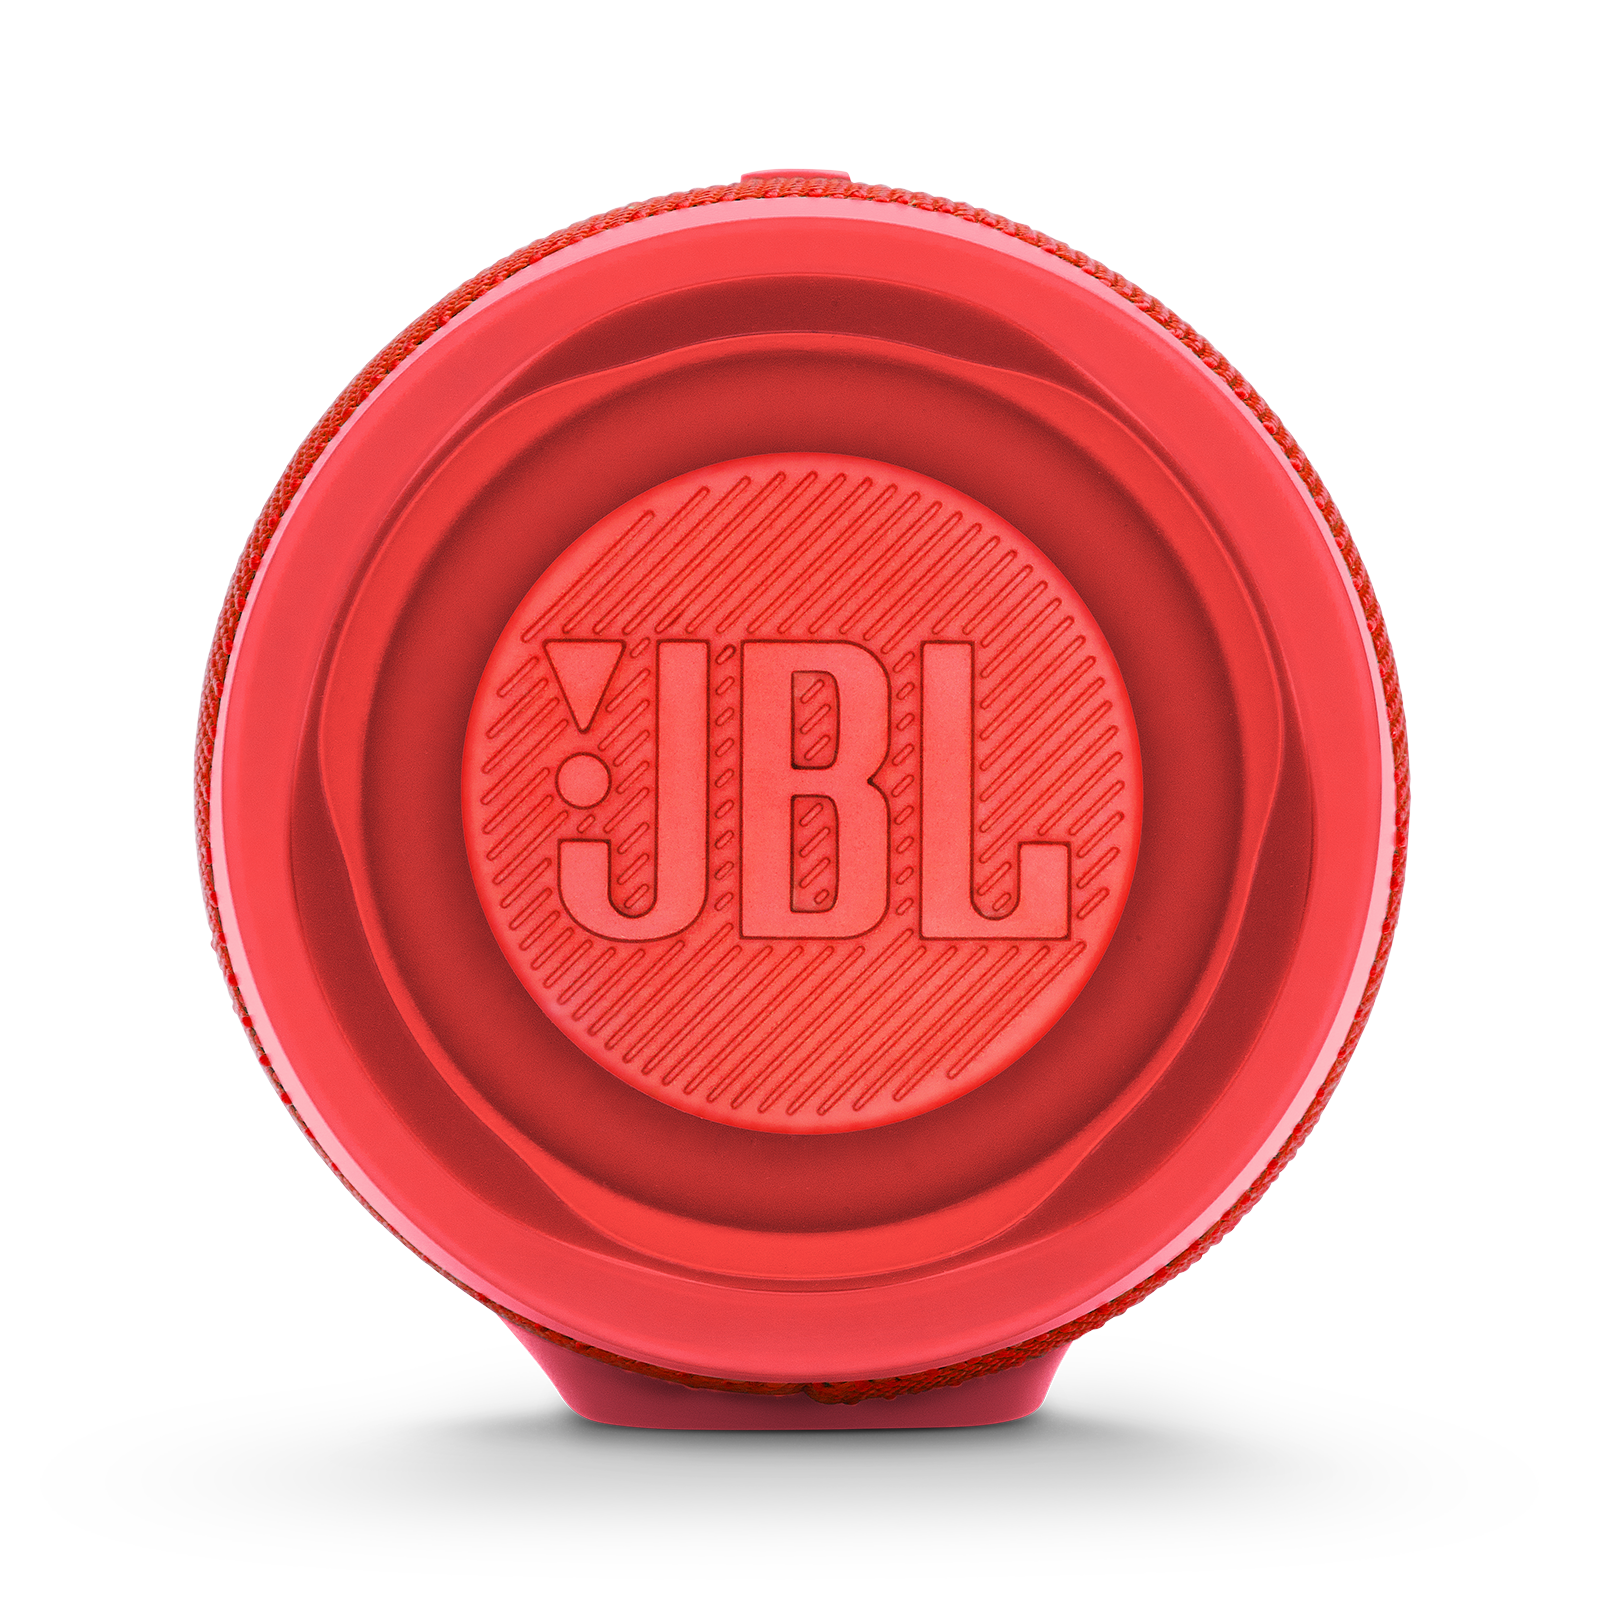 JBL Charge 4 - Red - Portable Bluetooth speaker - Detailshot 2